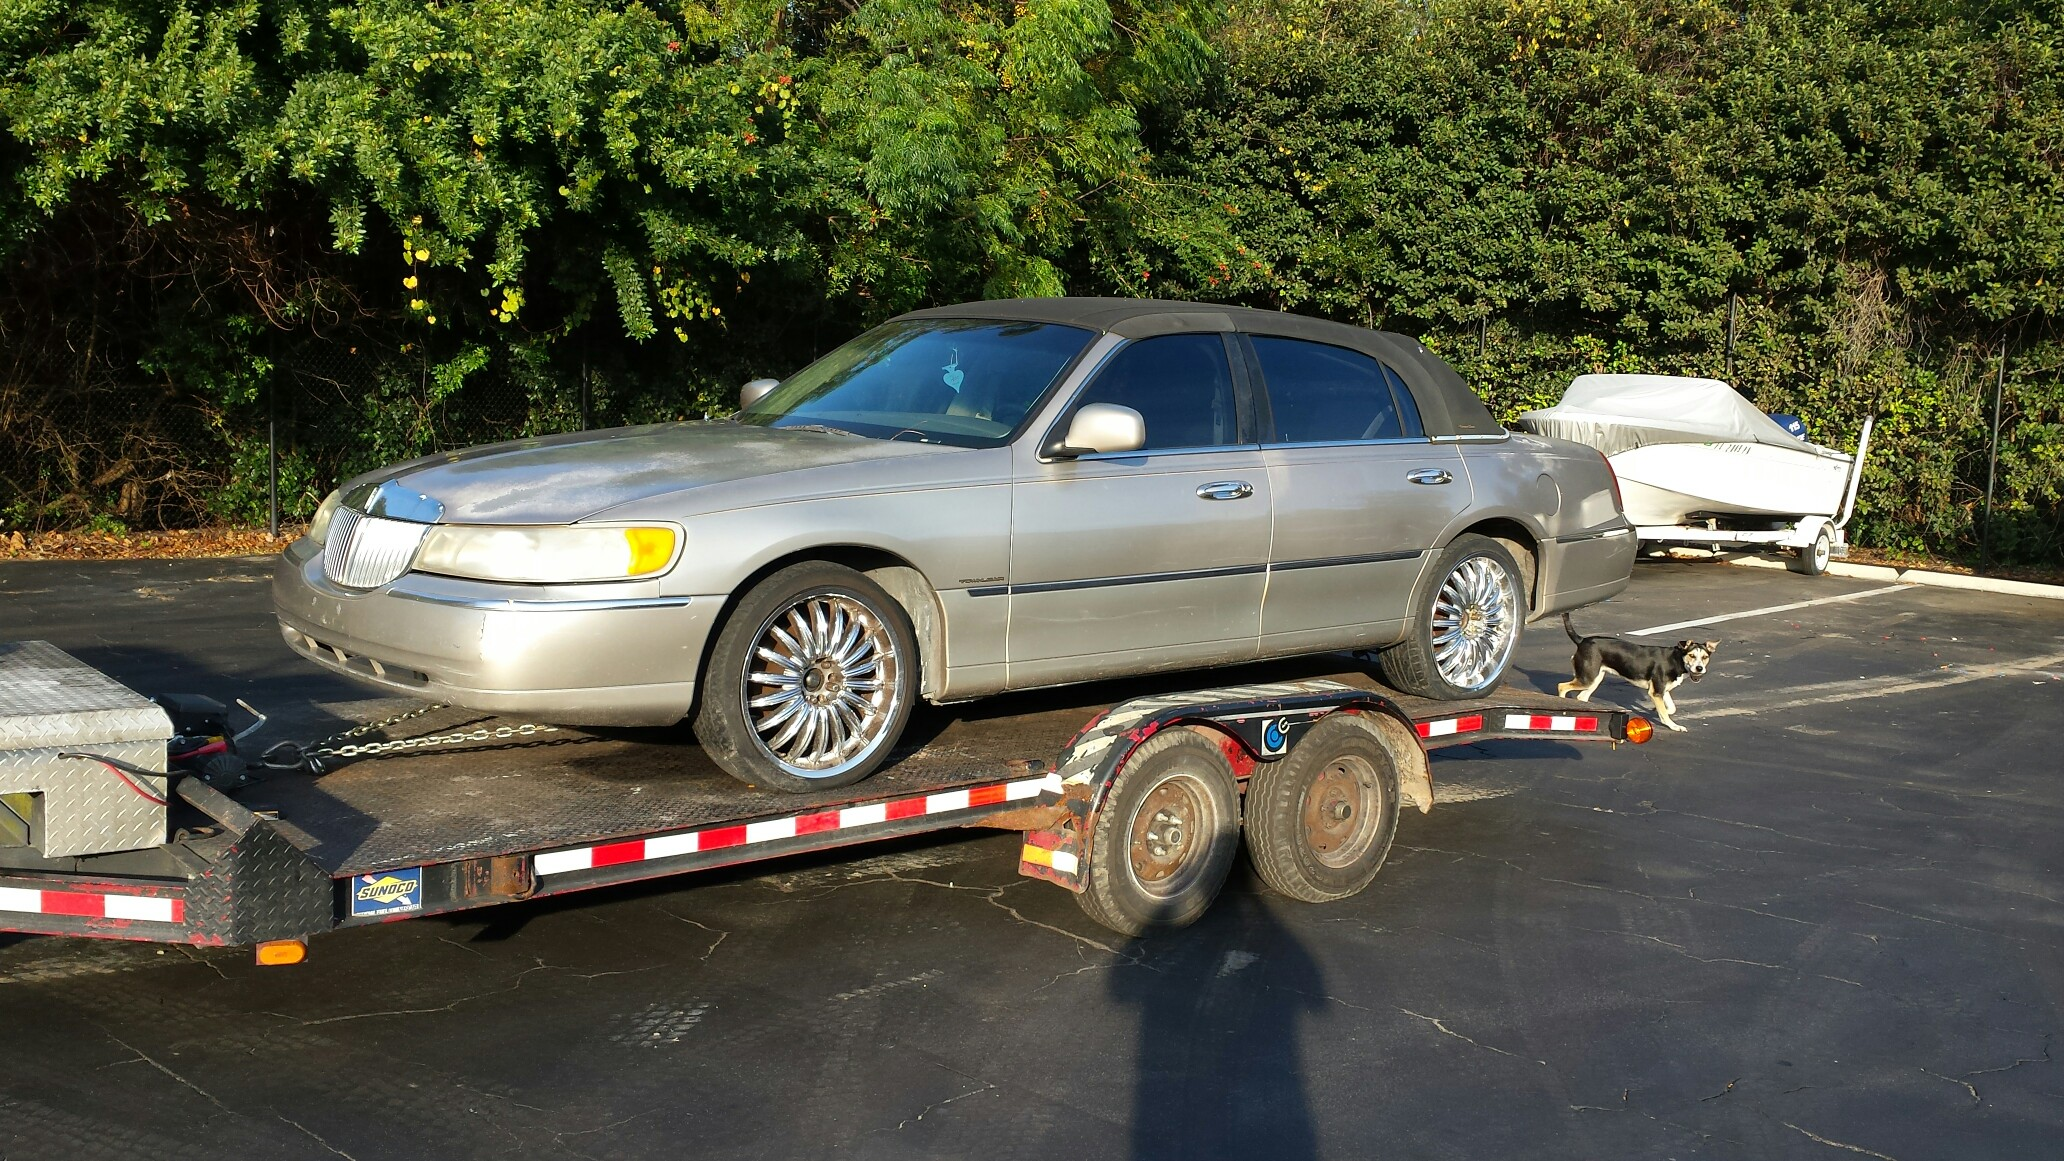 Lincoln Town Car (Recently Purchased by Junk Cars Orlando, LLC)